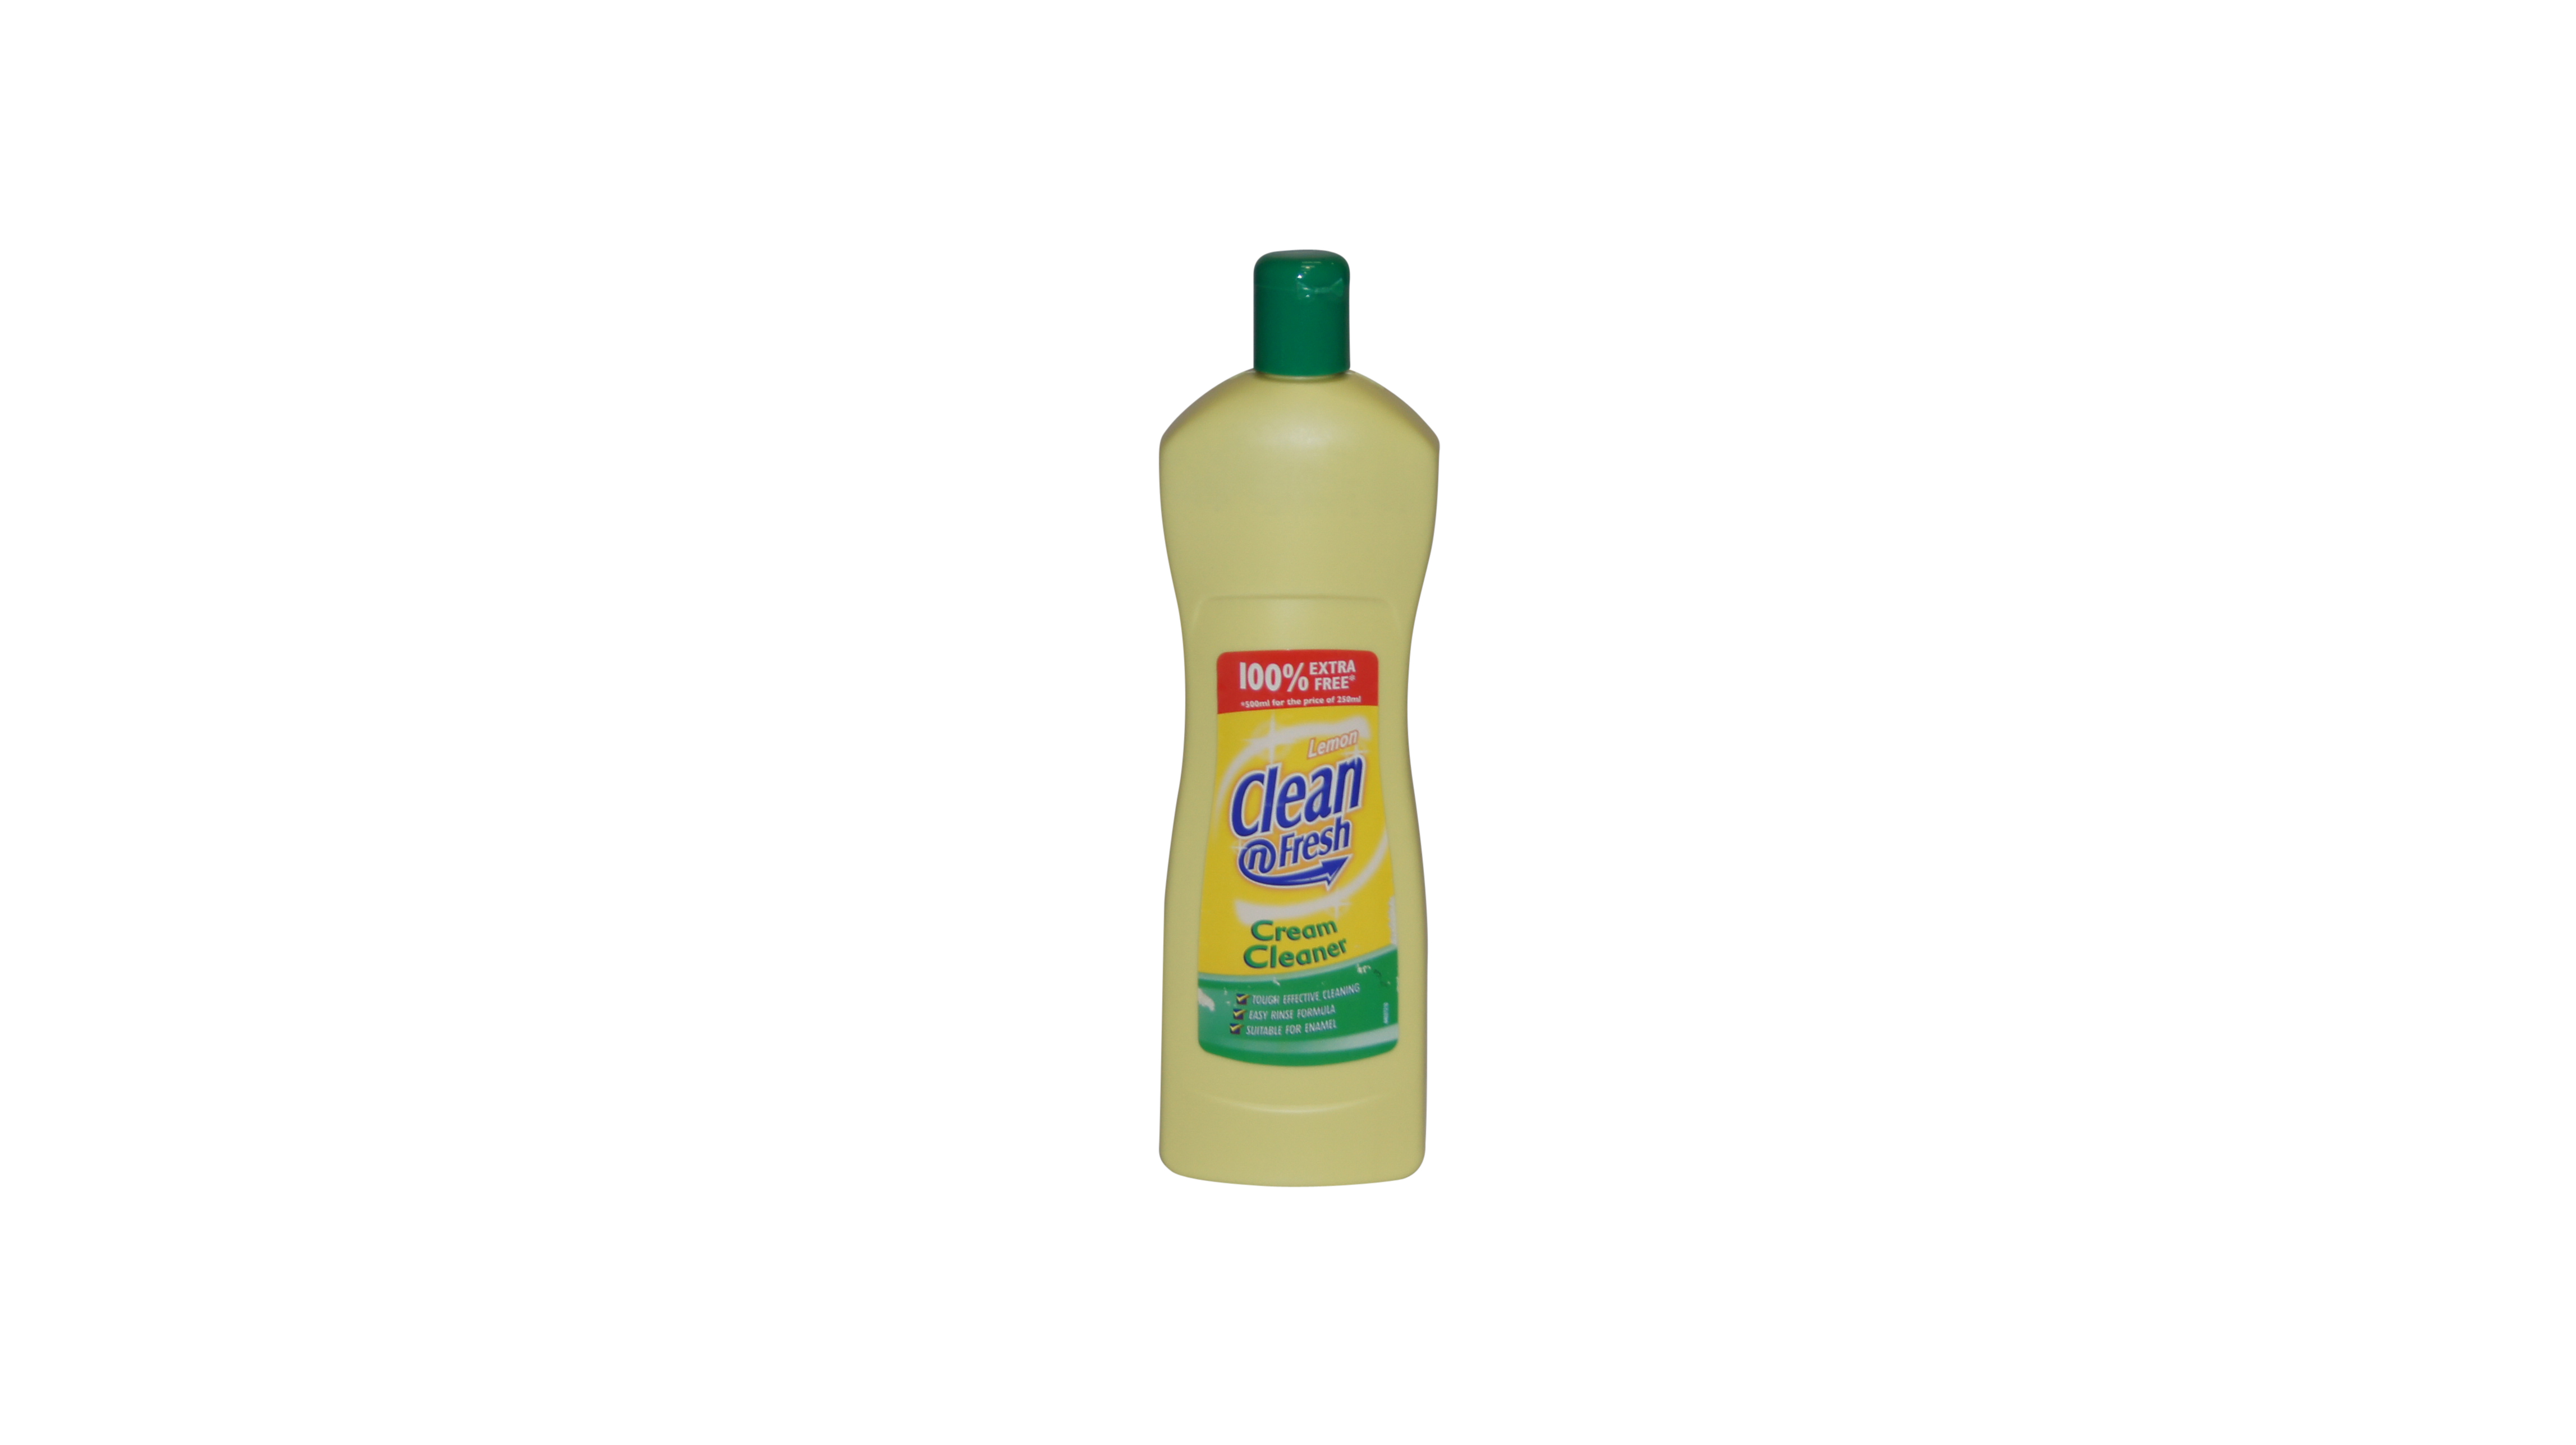 Cleaning Products 250ml Clean & Fresh Cream Cleaner